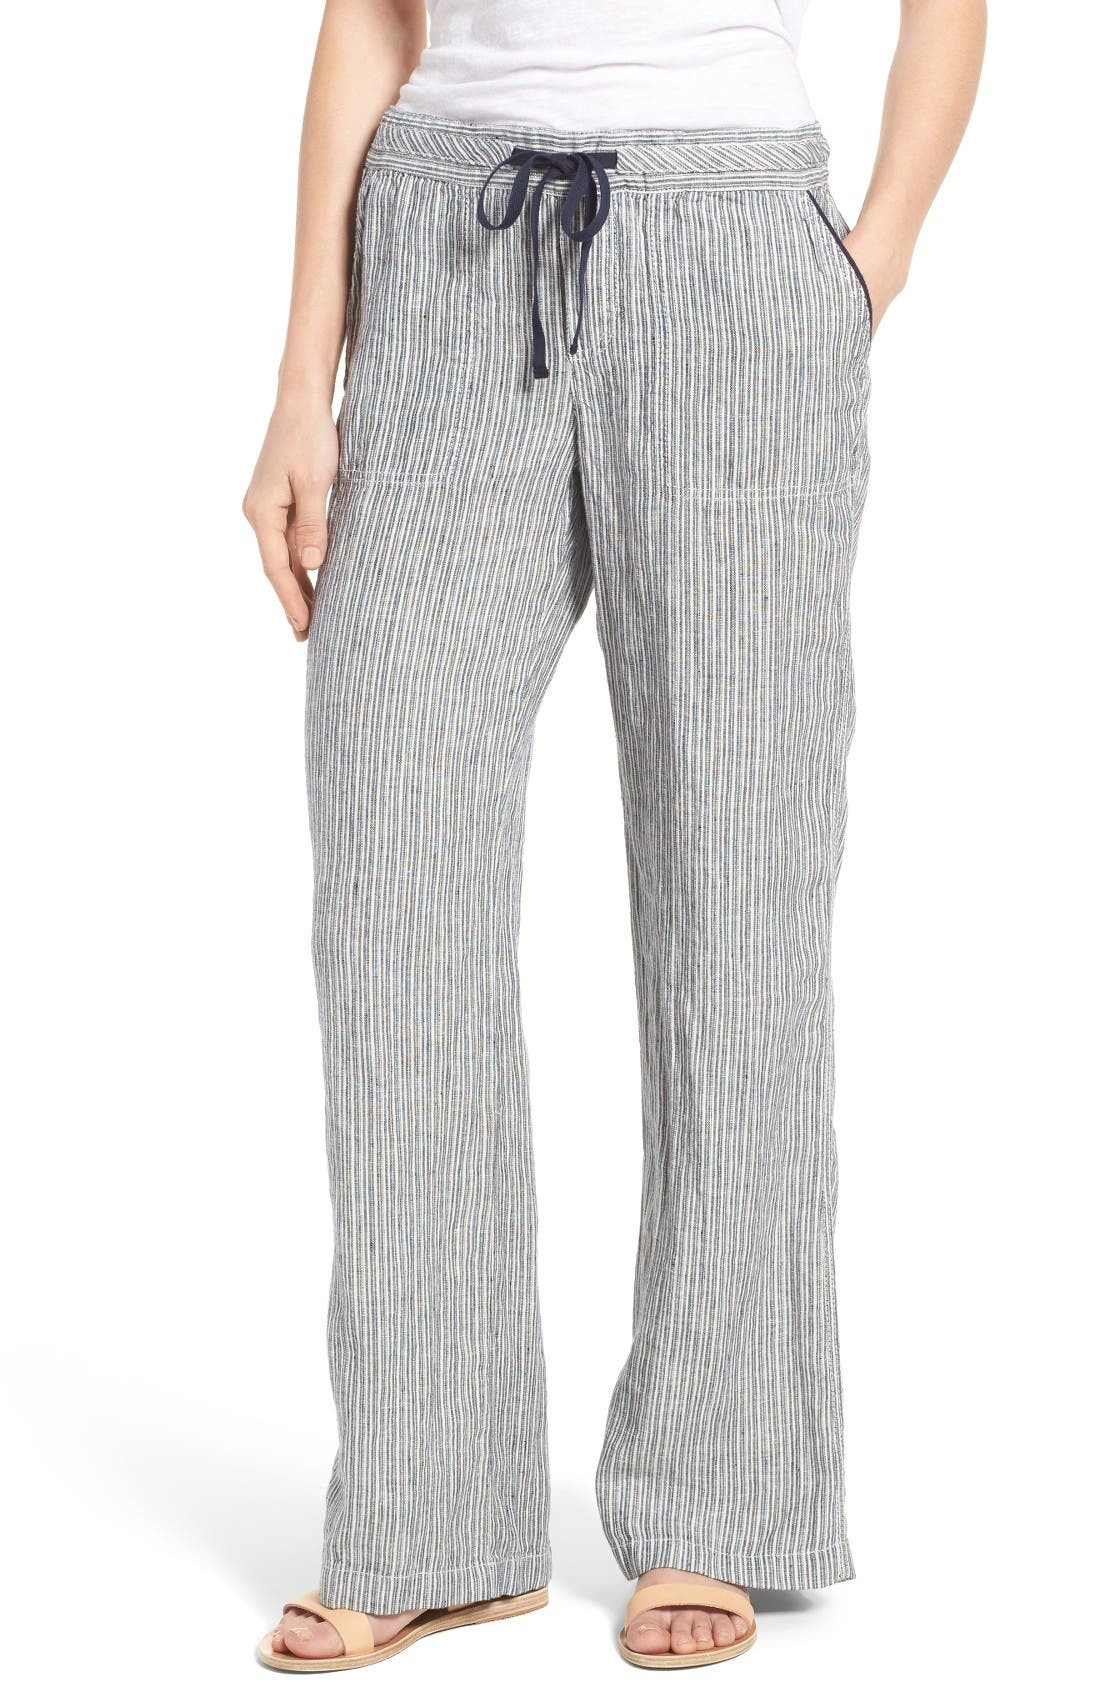 Drawstring Linen Pants,                         Main,                         color, Ivory- Navy Seaside Stripe